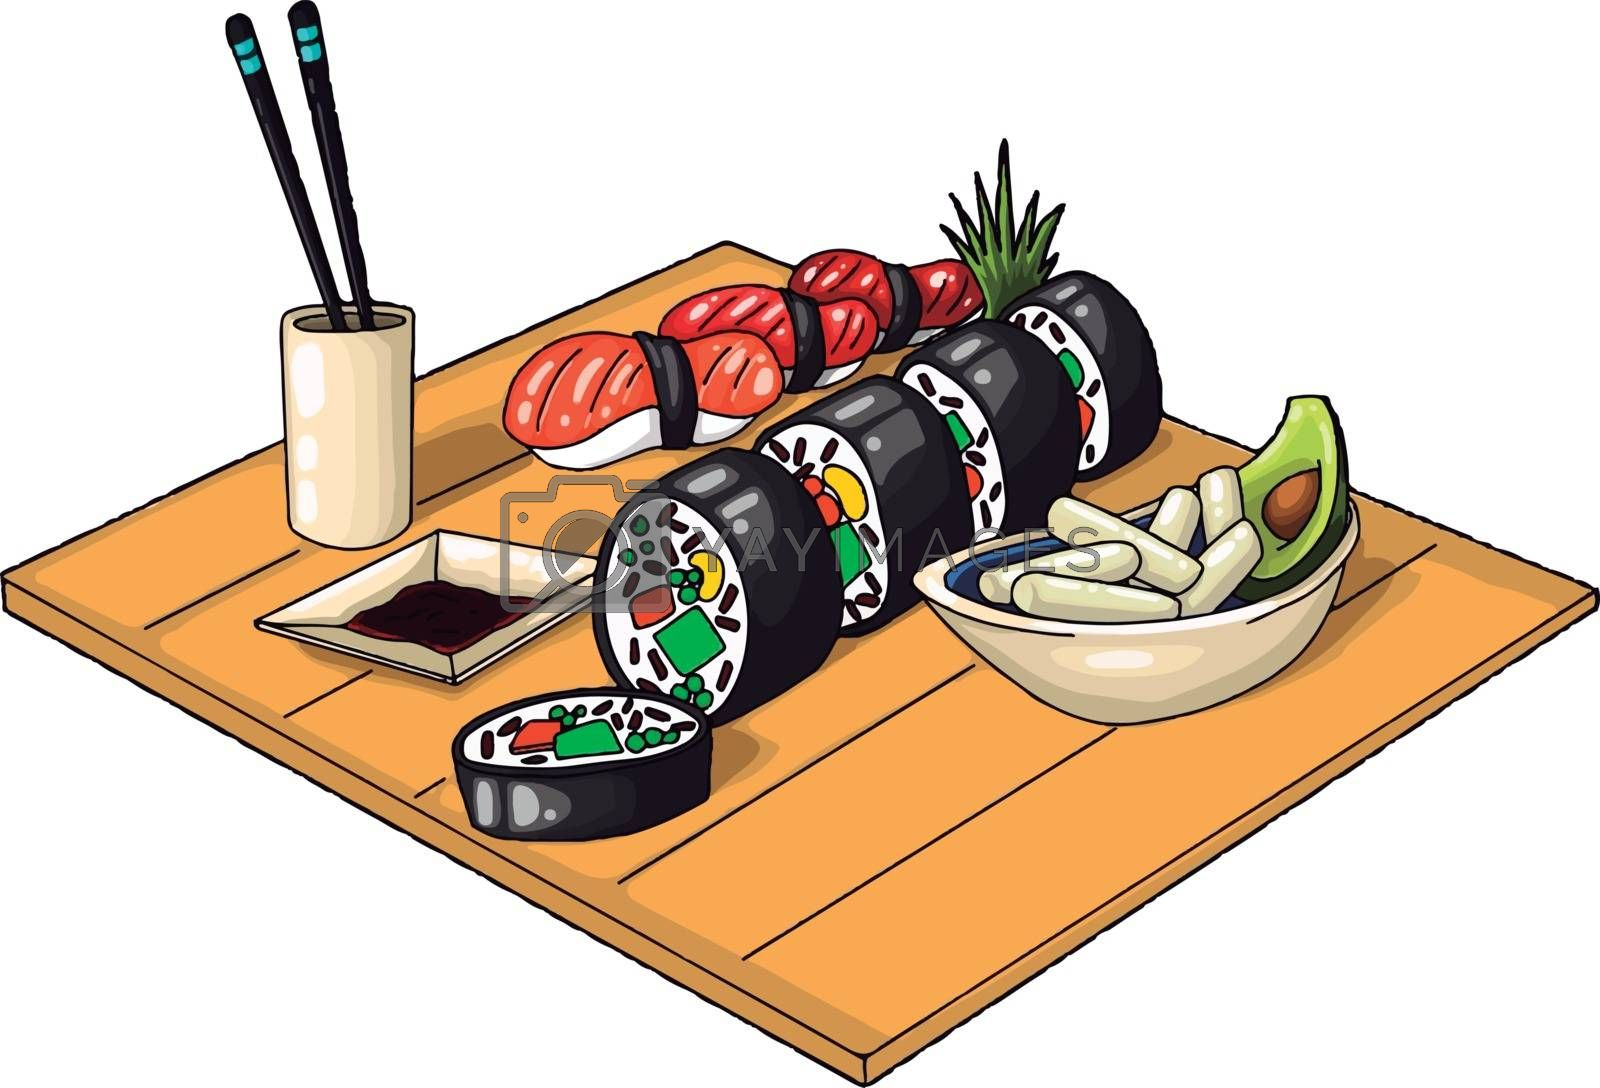 A good feast of chinese food, illustration, vector on white background.